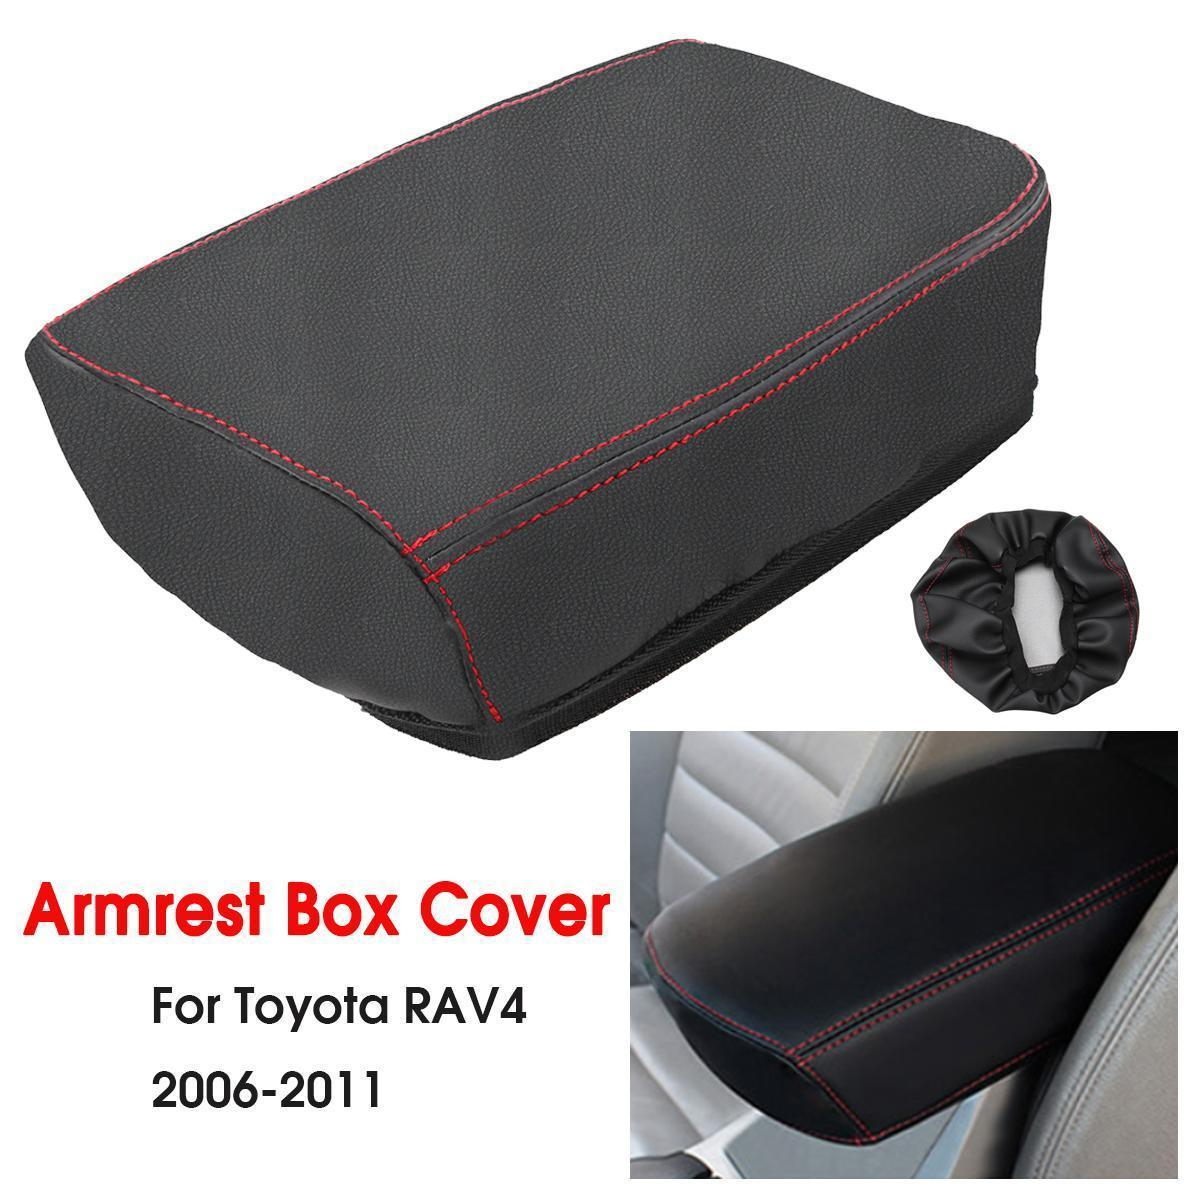 Car Console Armrest Box Cover DIY Leather Protection Pad for Toyota RAV4  2006 2007 2008 2009 2010 2011 2012 2013 2014 #Black